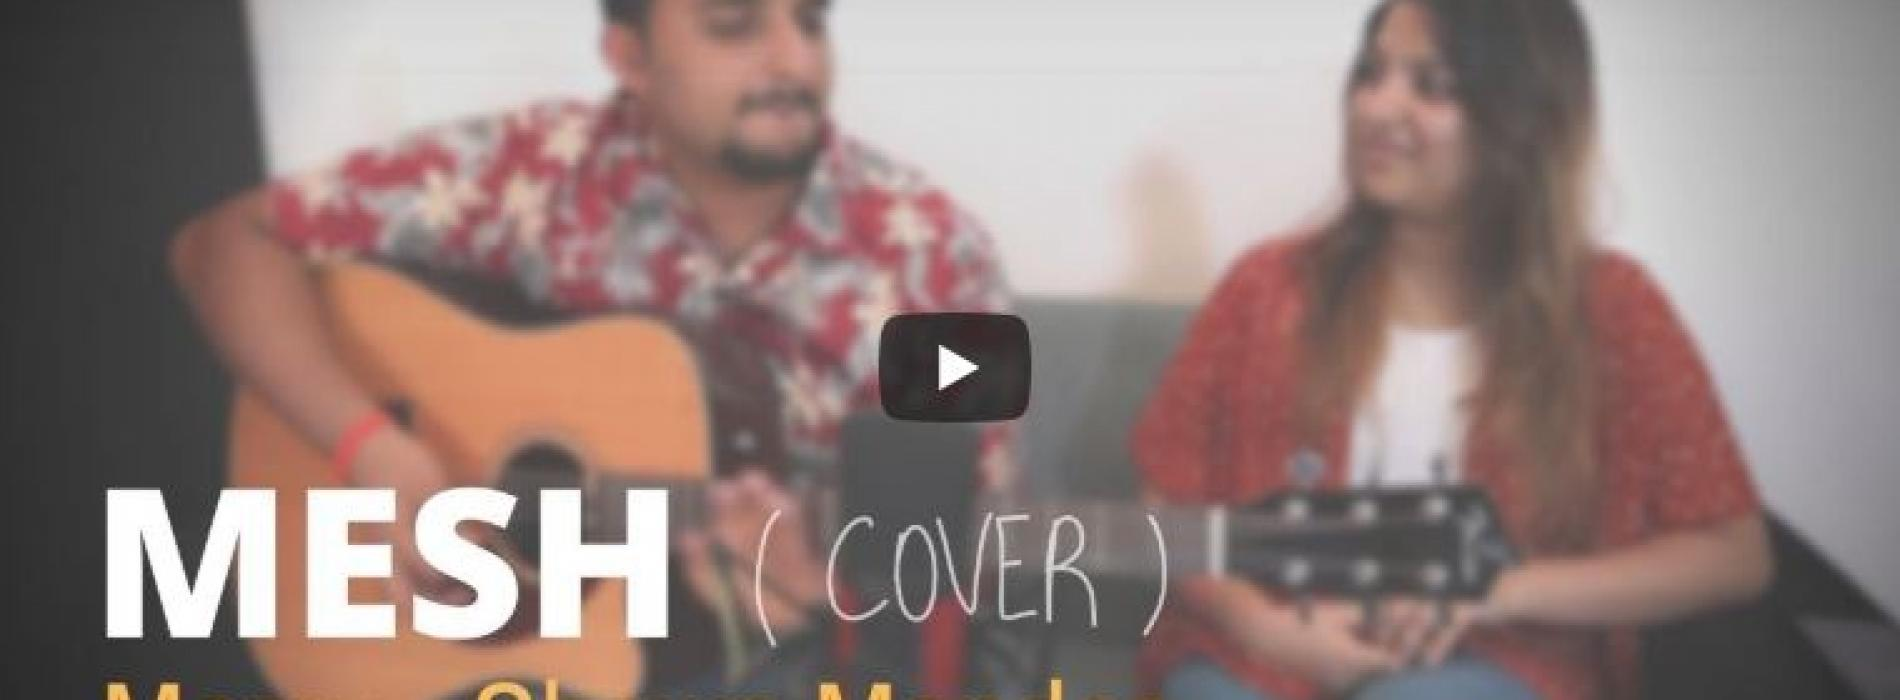 Mercy – Shawn Mendes (MESH COVER)